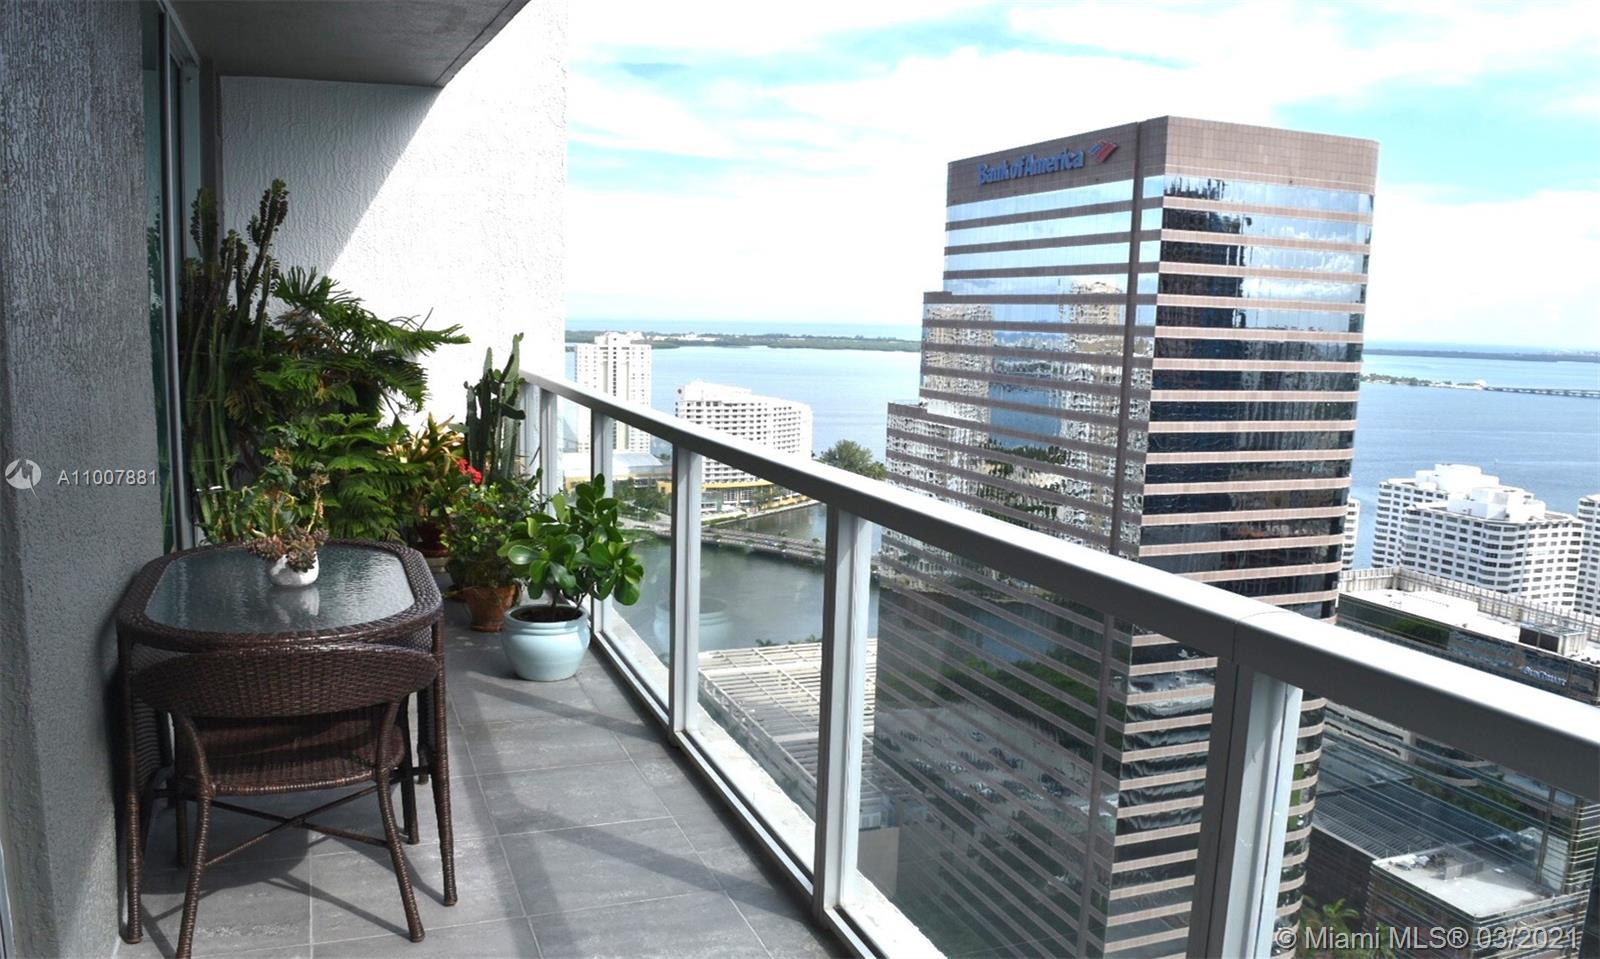 500 Brickell West Tower #3810 - 500 Brickell Ave #3810, Miami, FL 33131